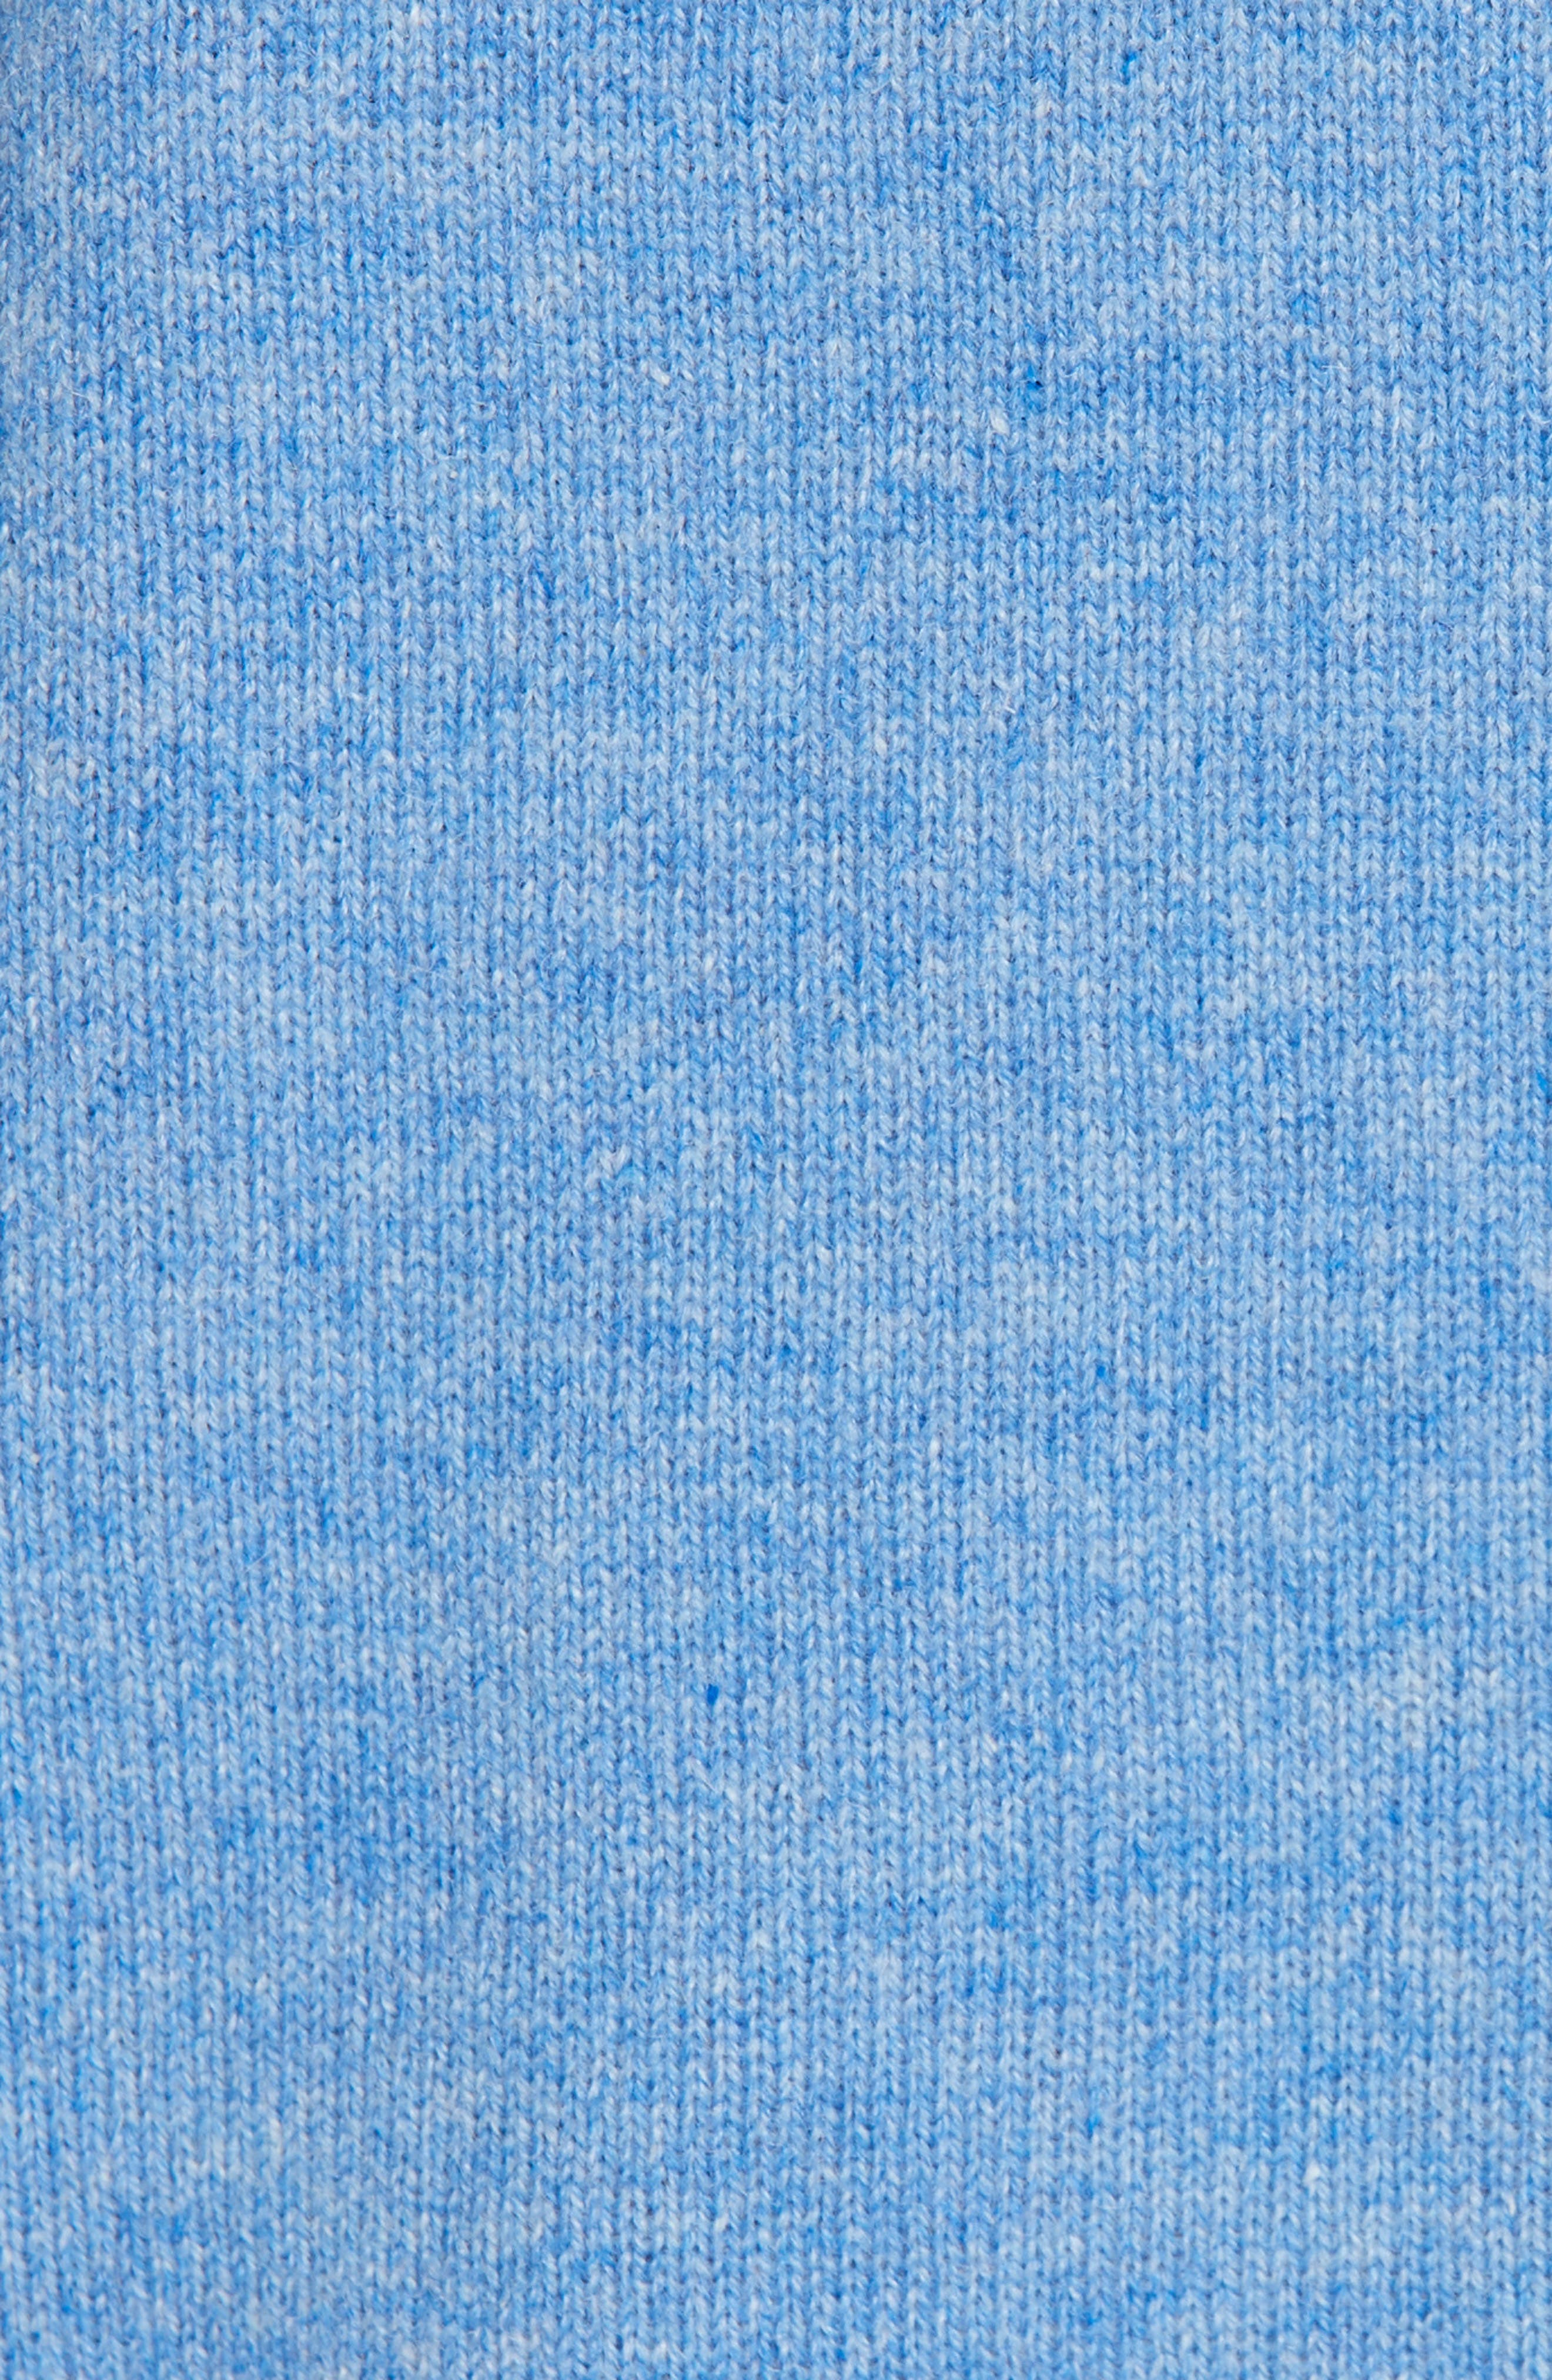 V-Neck High/Low Cashmere Sweater,                             Alternate thumbnail 5, color,                             BLUE PROVENCE HEATHER